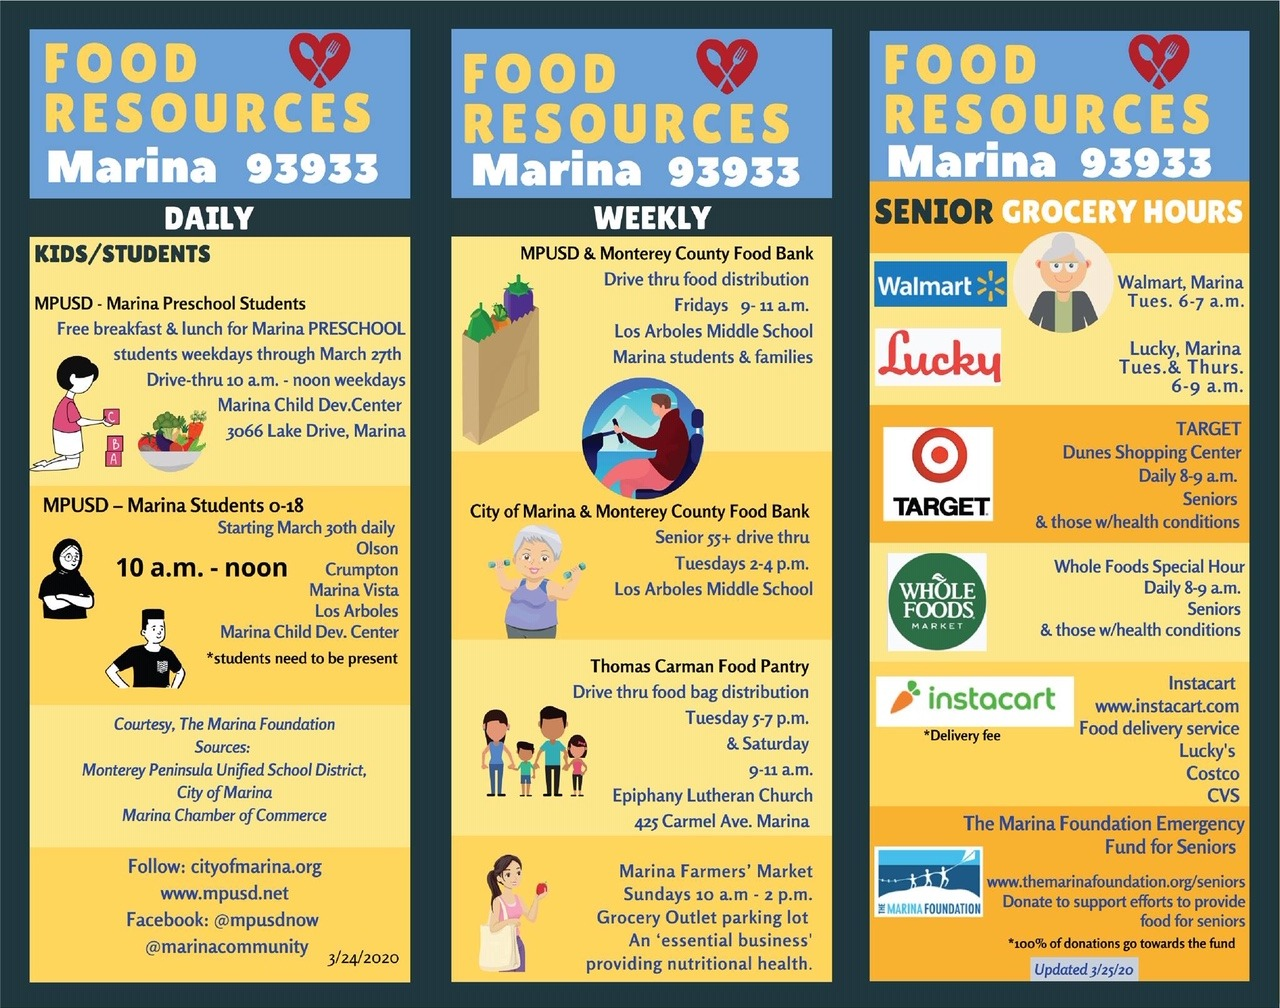 City of Marina Food Resources